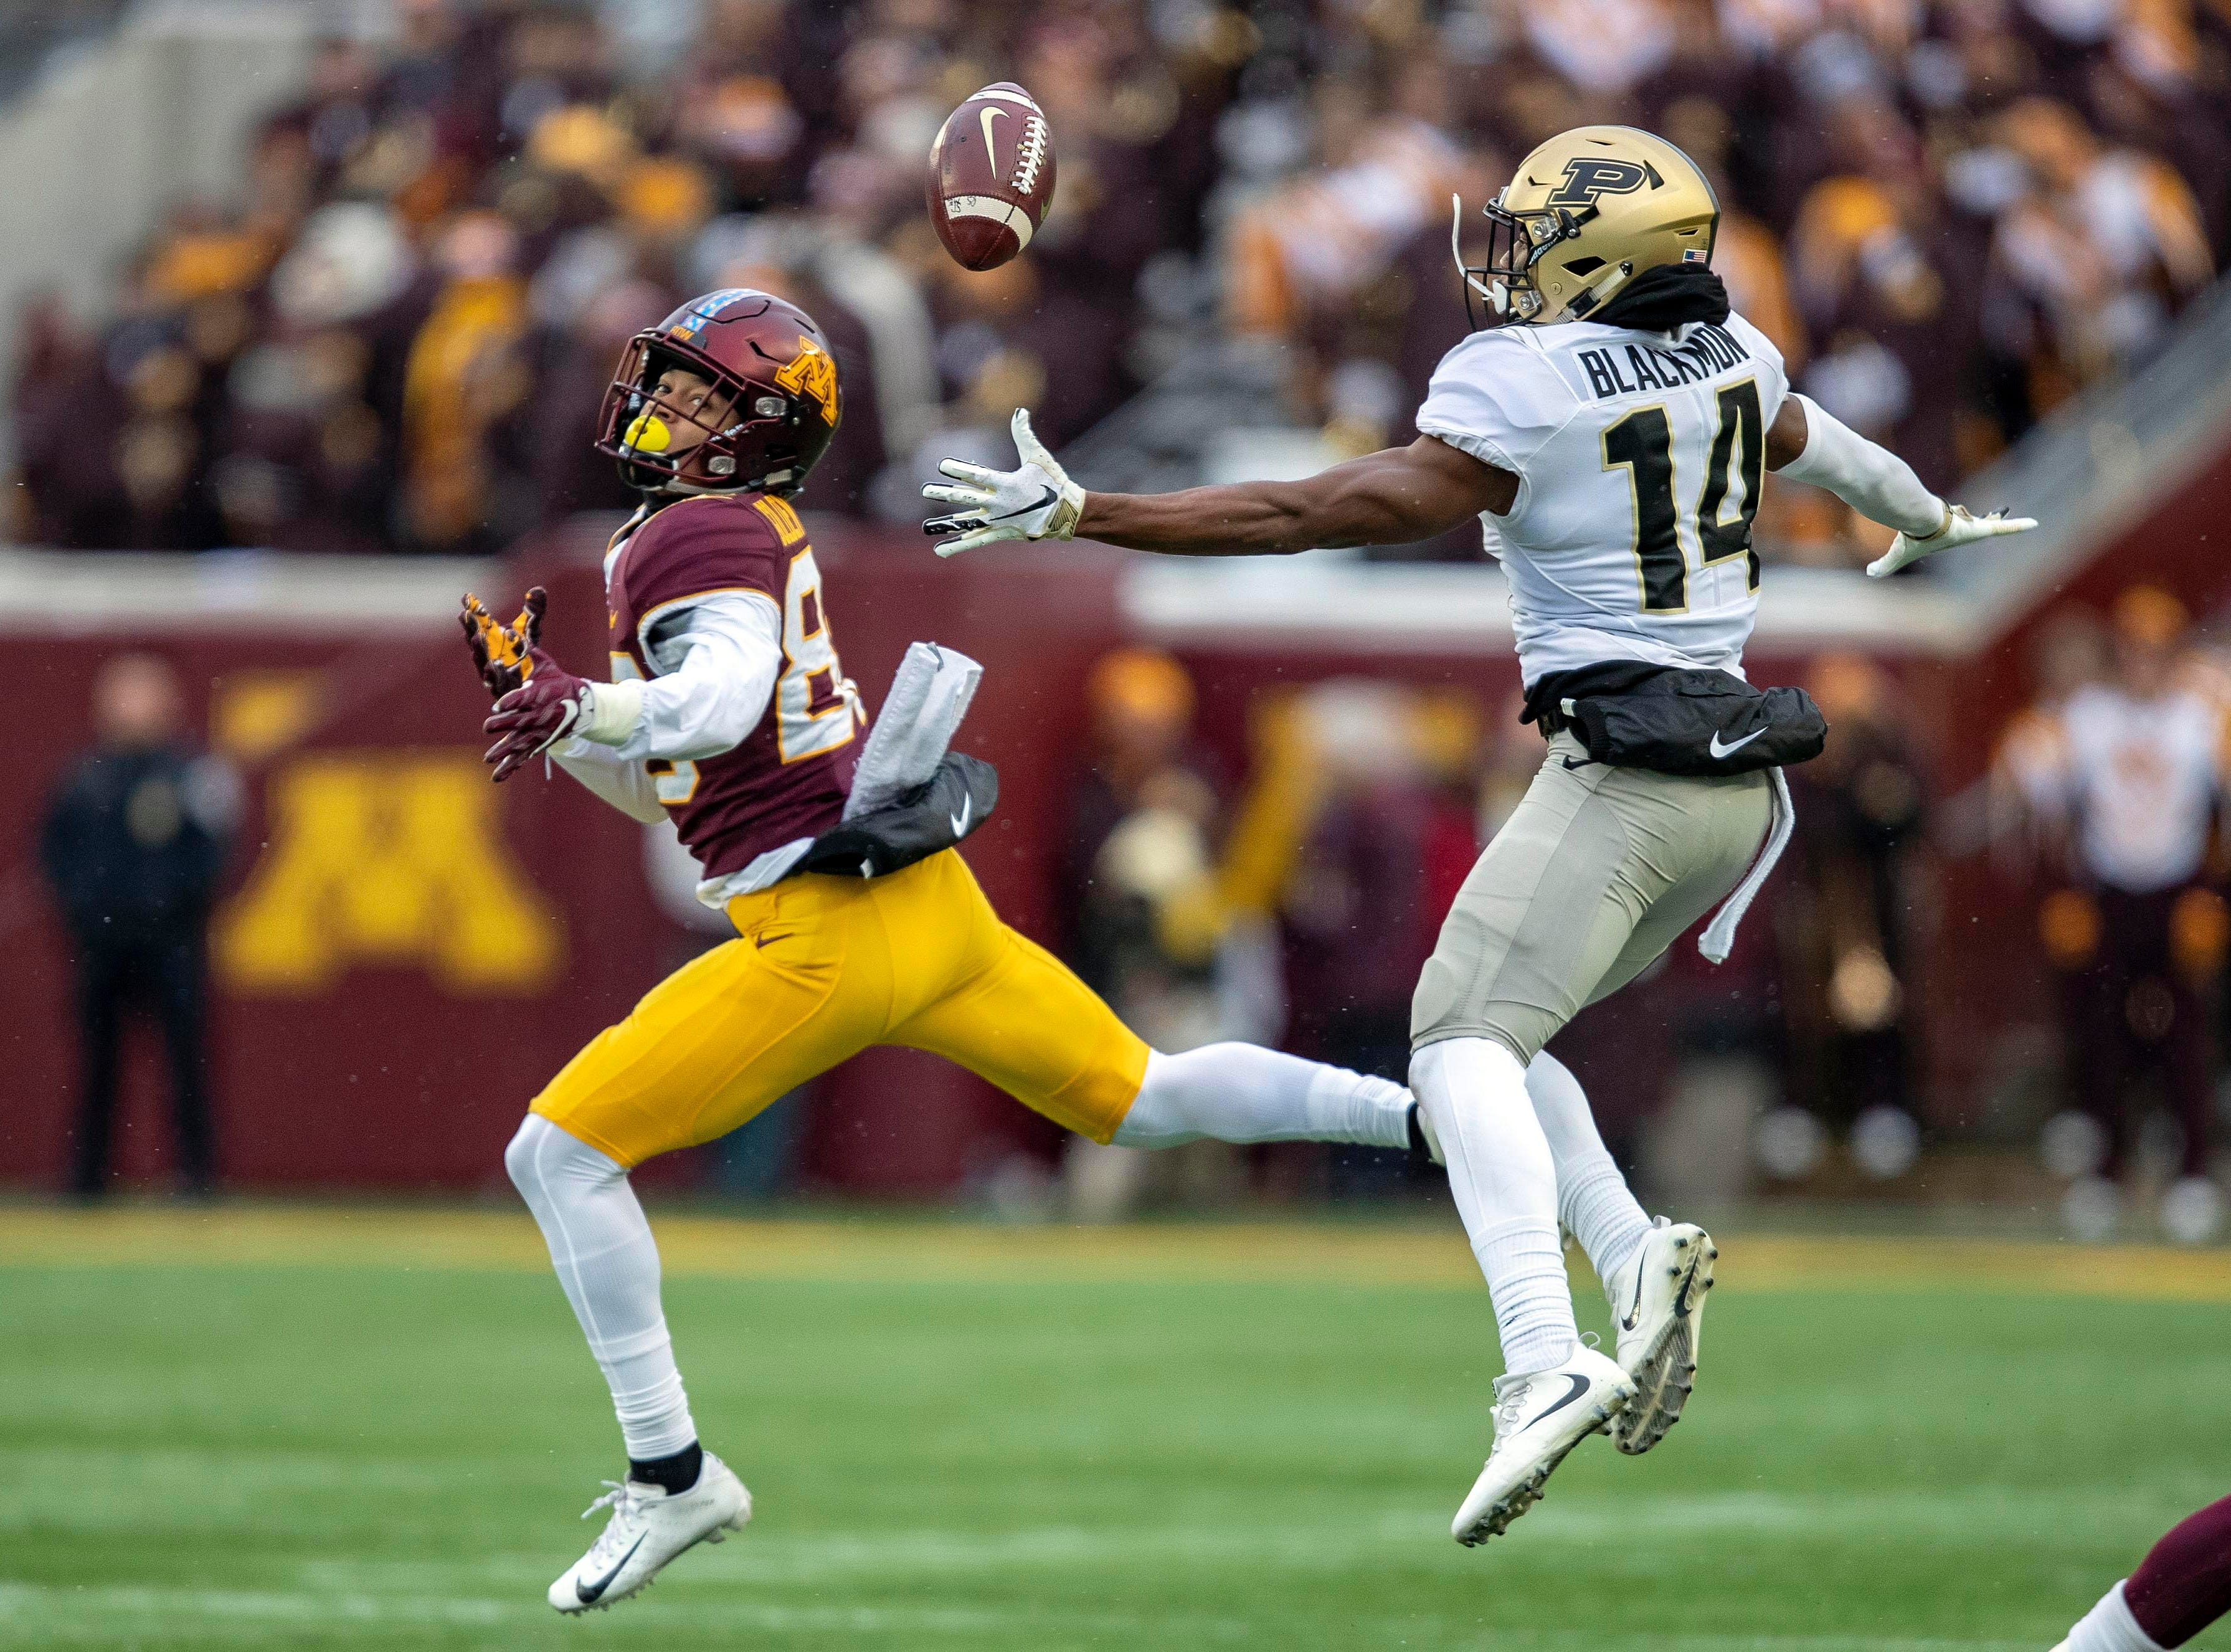 Nov 10, 2018; Minneapolis, MN, USA; Minnesota Golden Gophers wide receiver Demetrius Douglas (82) and Purdue Boilermakers cornerback Antonio Blackmon (14) attempt to catch a deflected ball during the first half at TCF Bank Stadium. Mandatory Credit: Jesse Johnson-USA TODAY Sports